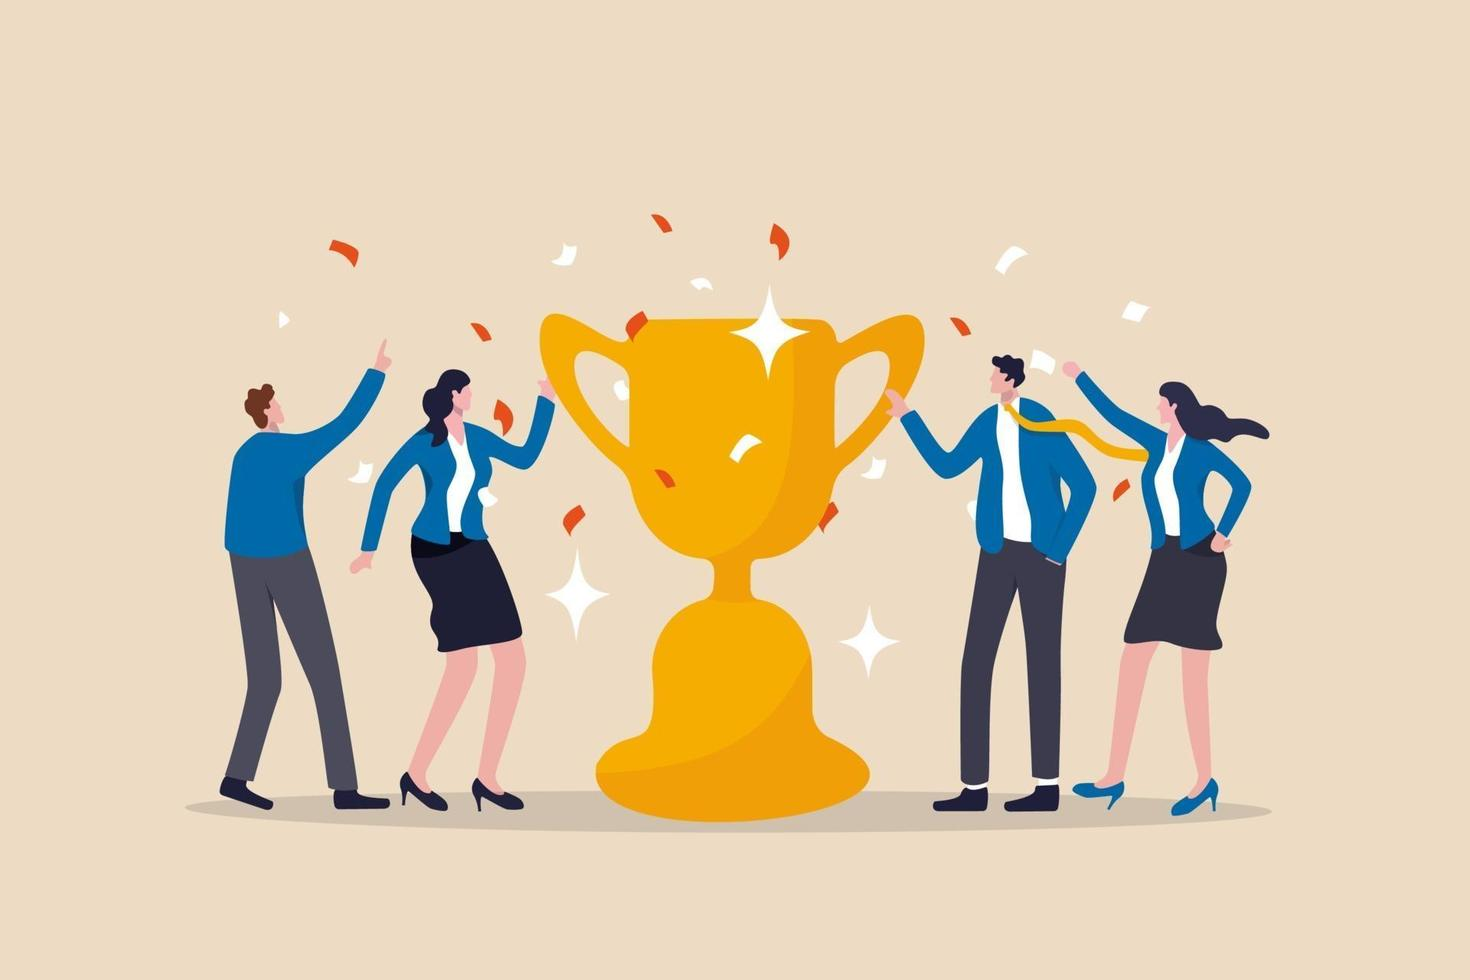 Team success recognition, reward for teamwork to achieve business goal, victory for coworkers to complete work mission concept, happiness success businessmen and women team holding winning trophy cup. vector